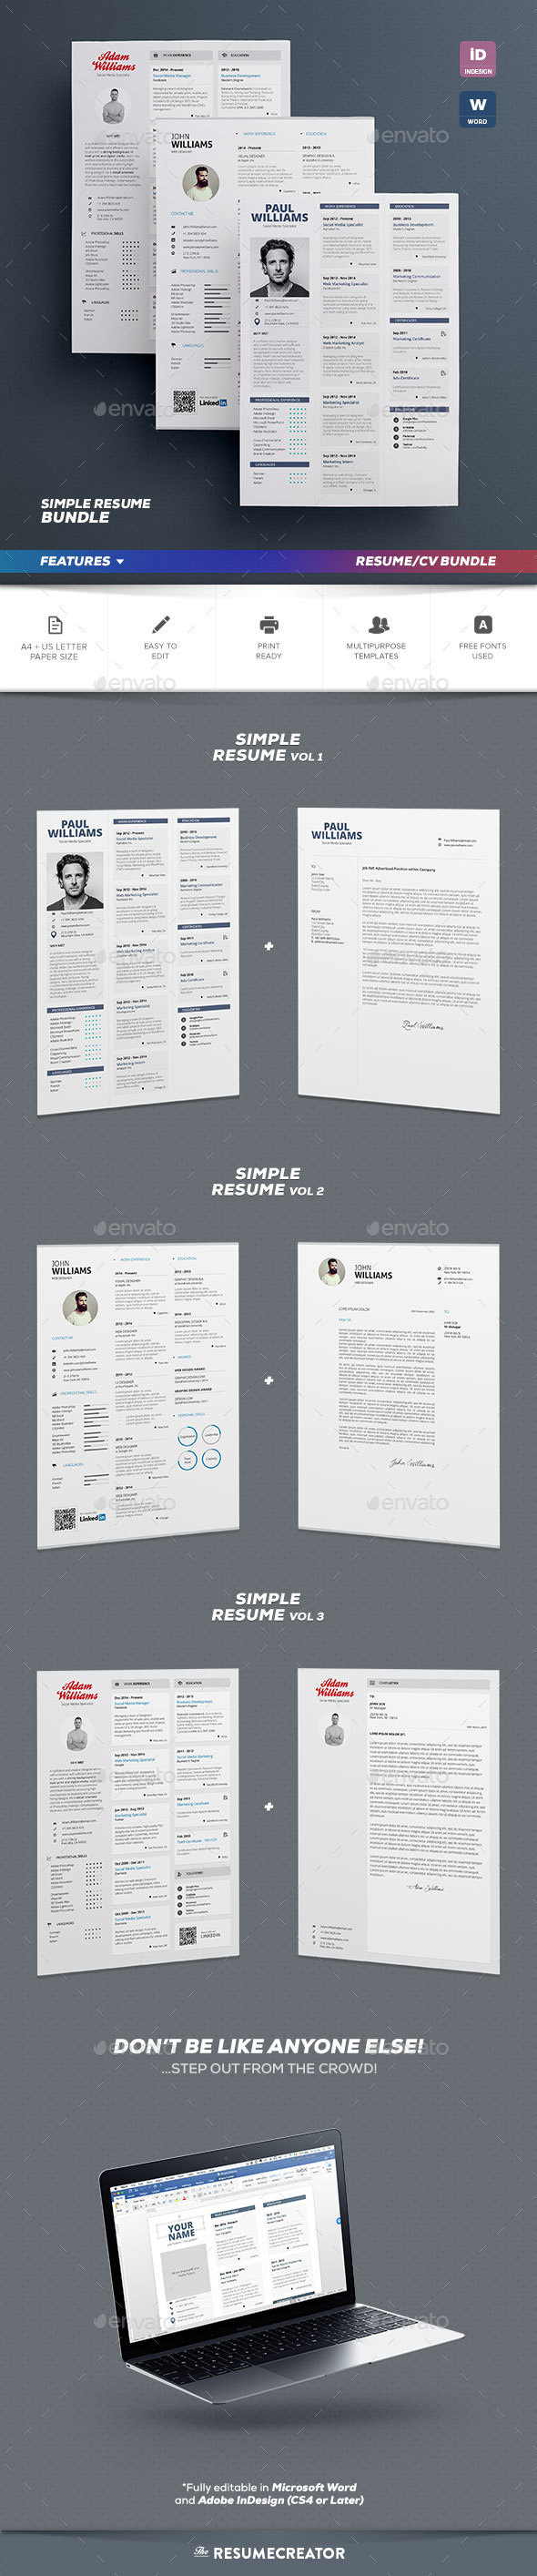 Simple Resume Bundle